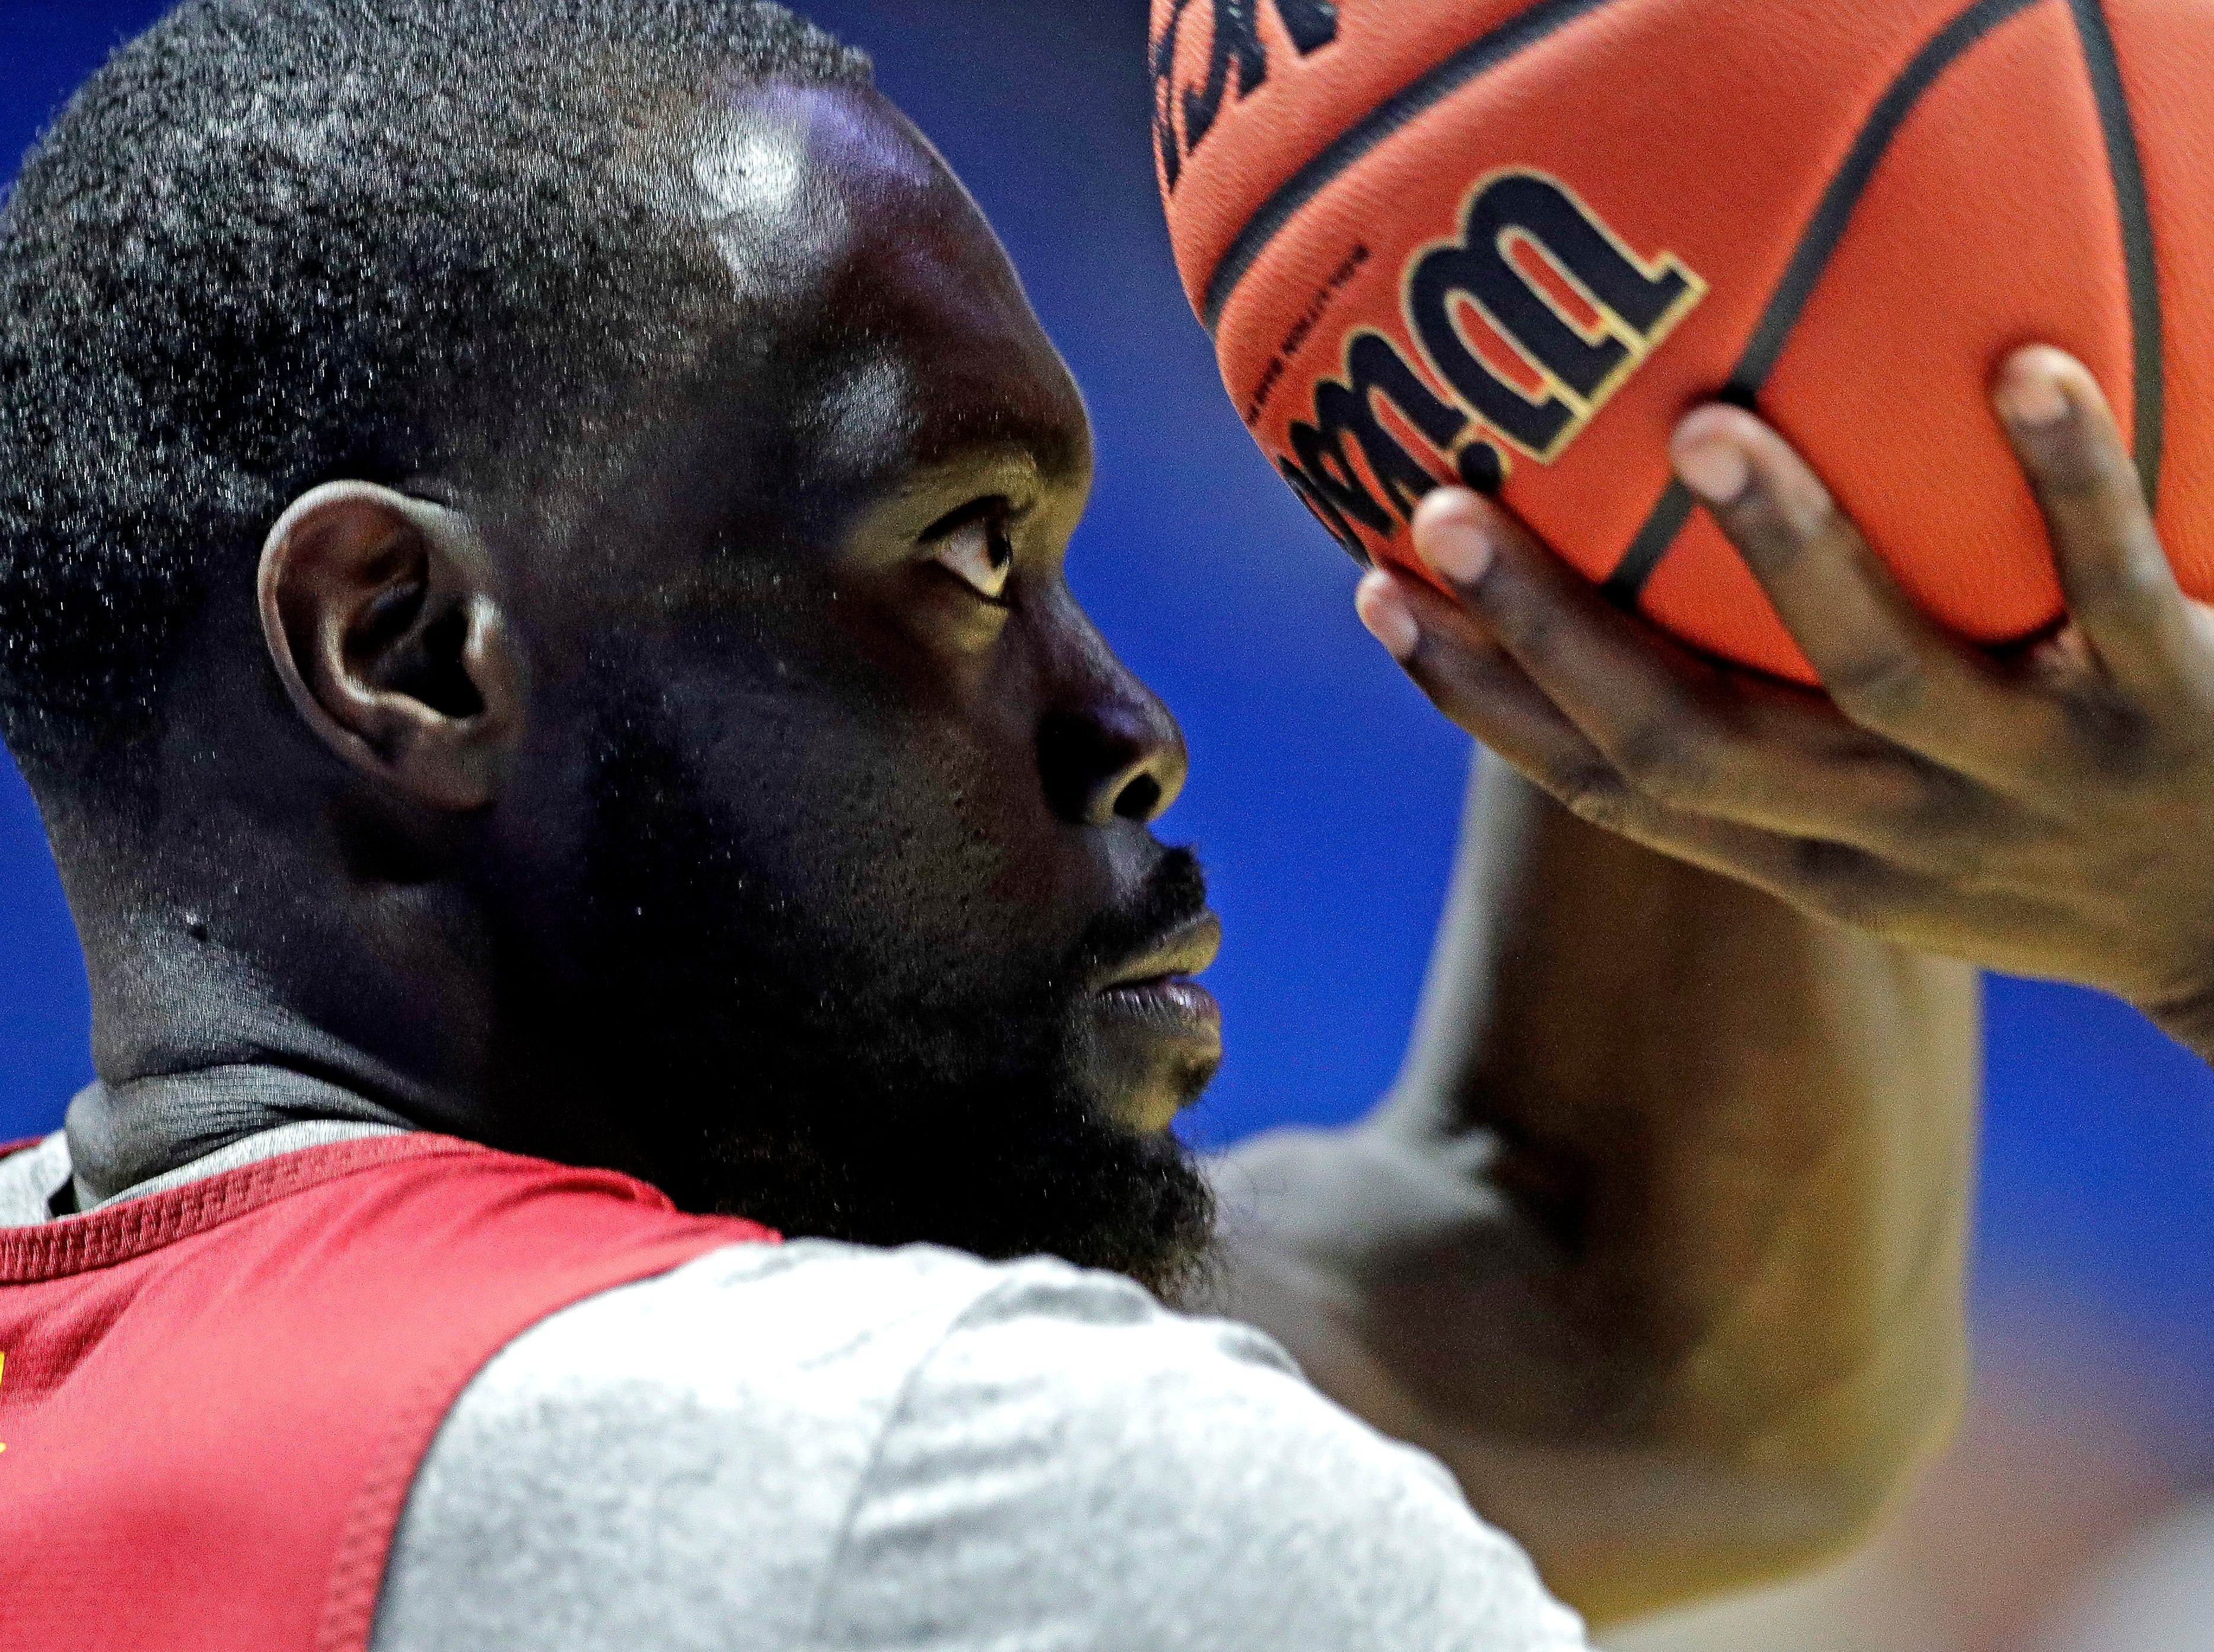 Iowa State's Marial Shayok shoots during practice for the NCAA men's college basketball tournament Thursday, March 21, 2019, in Tulsa, Oklahoma.